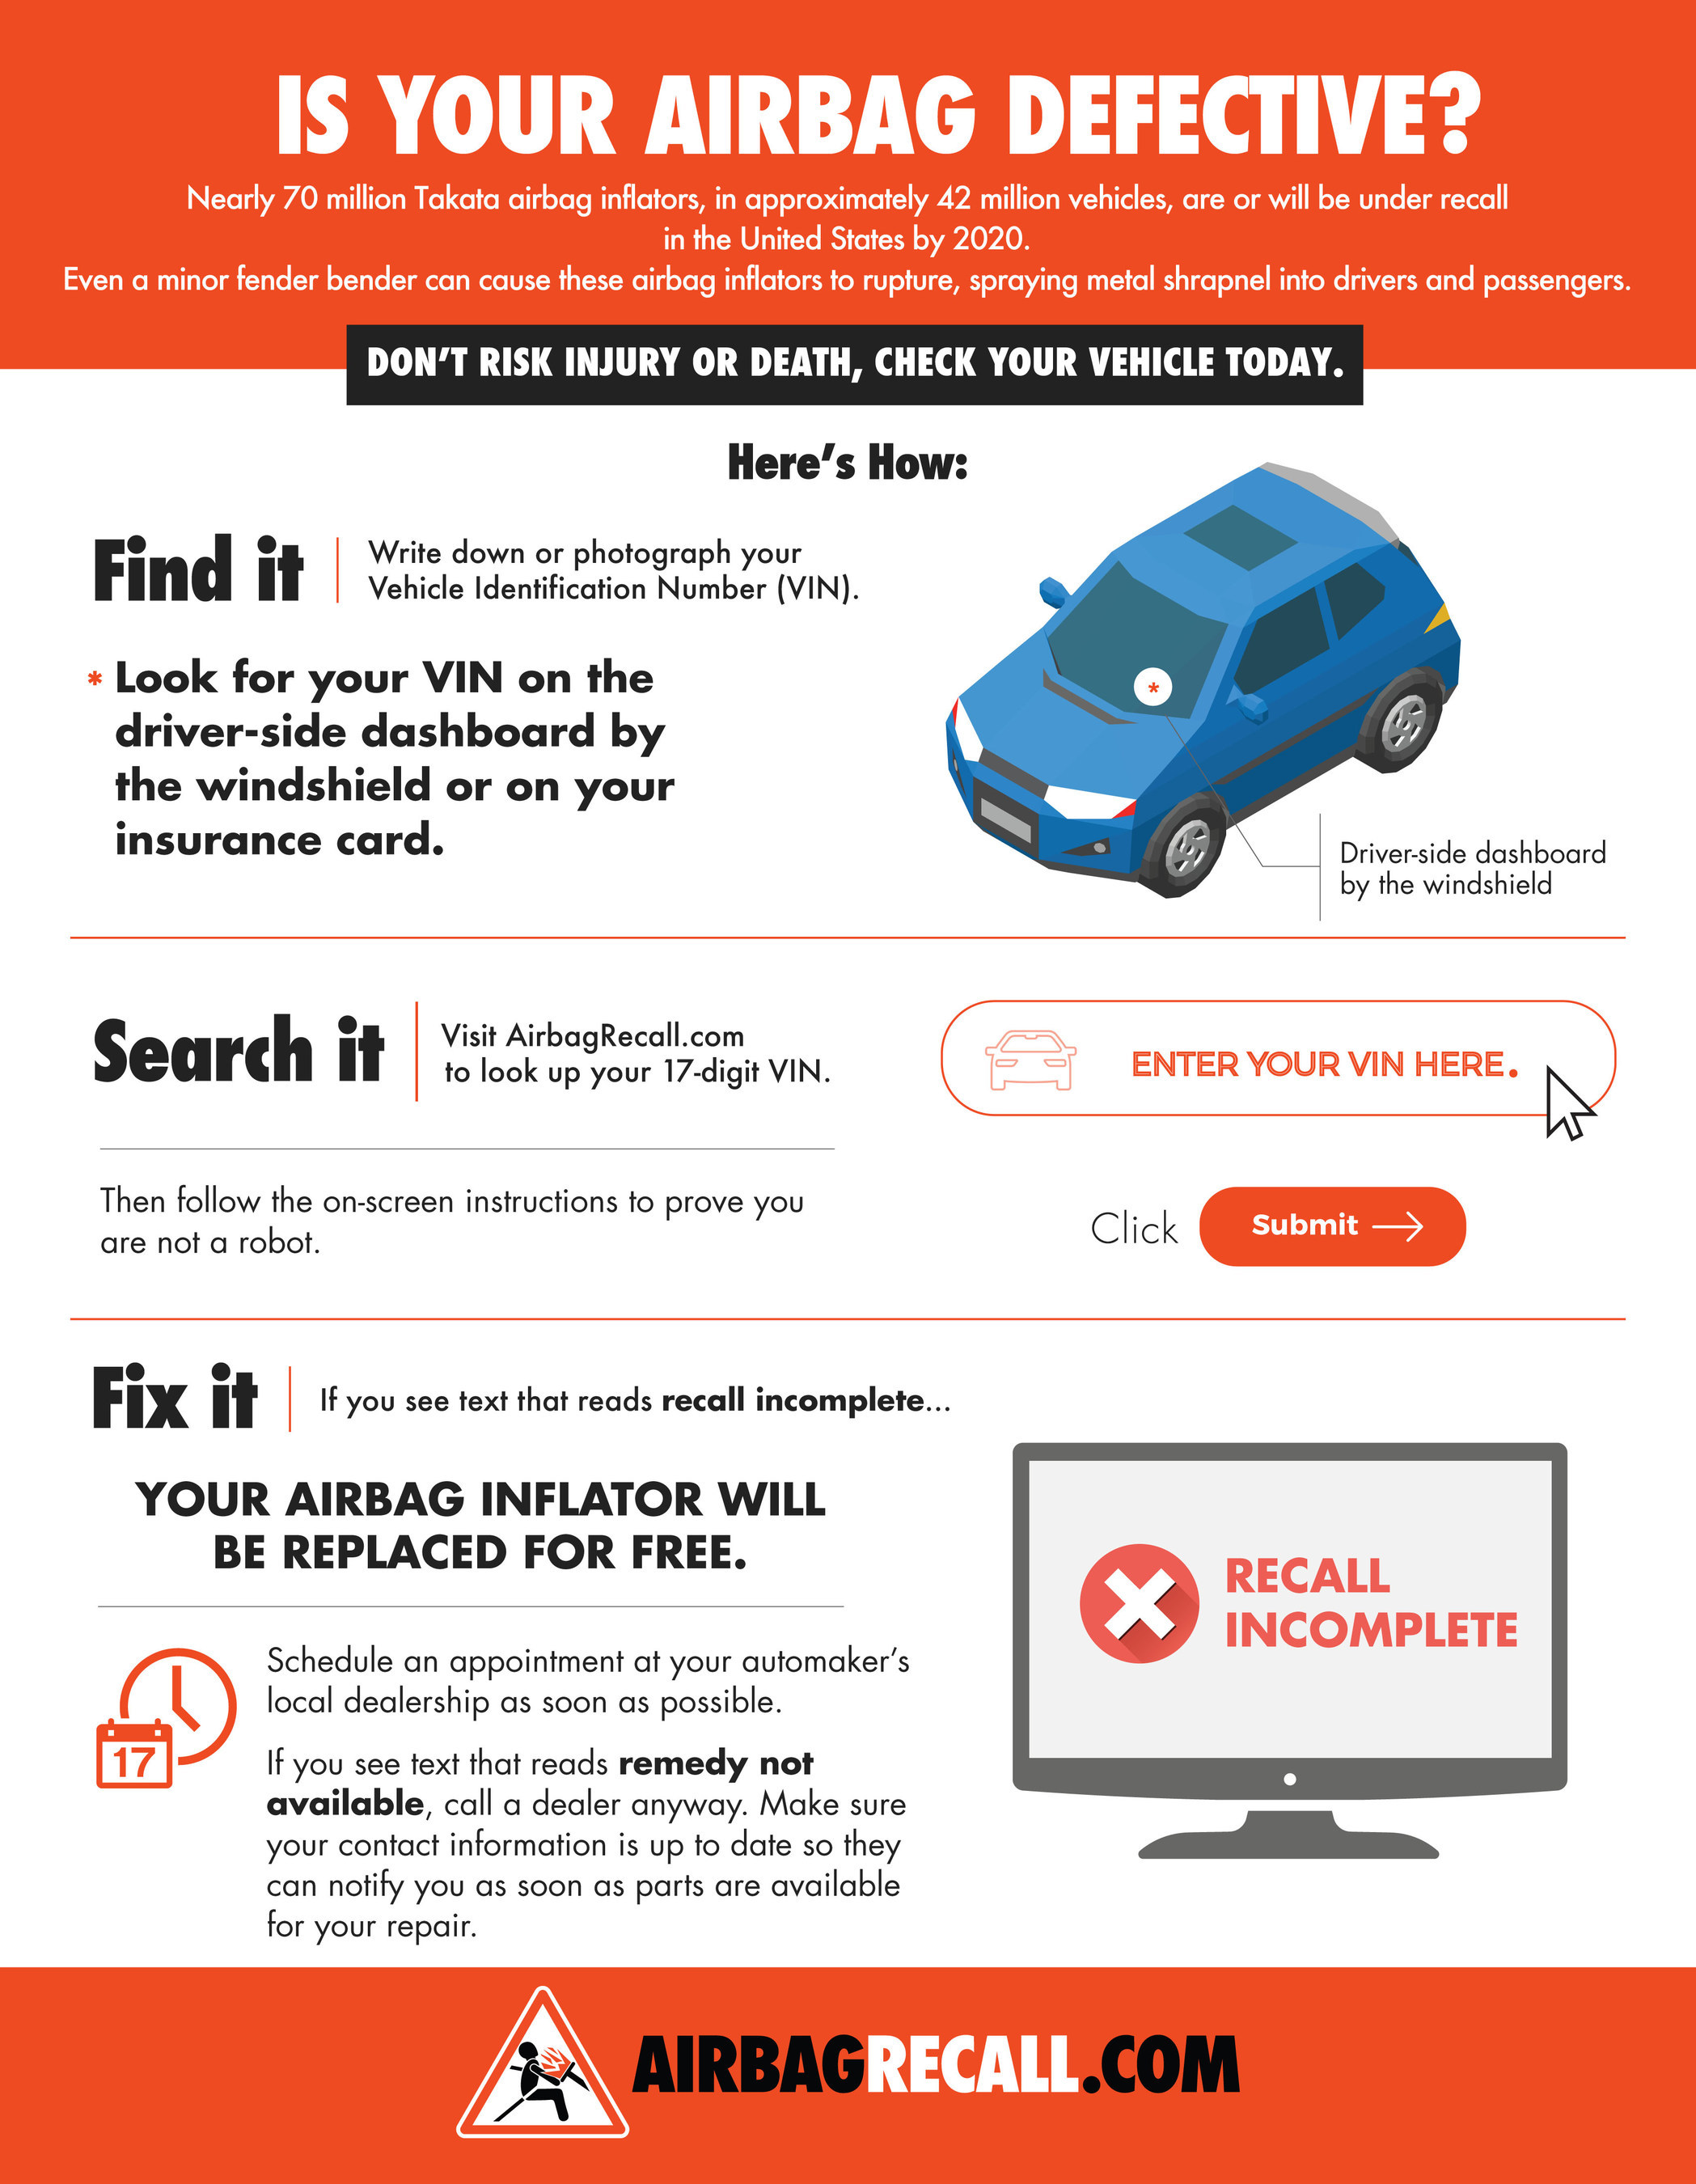 To determine if your car has a defective airbag inflator, visit  www.AirbagRecall.com and enter your vehicle identification number (VIN).